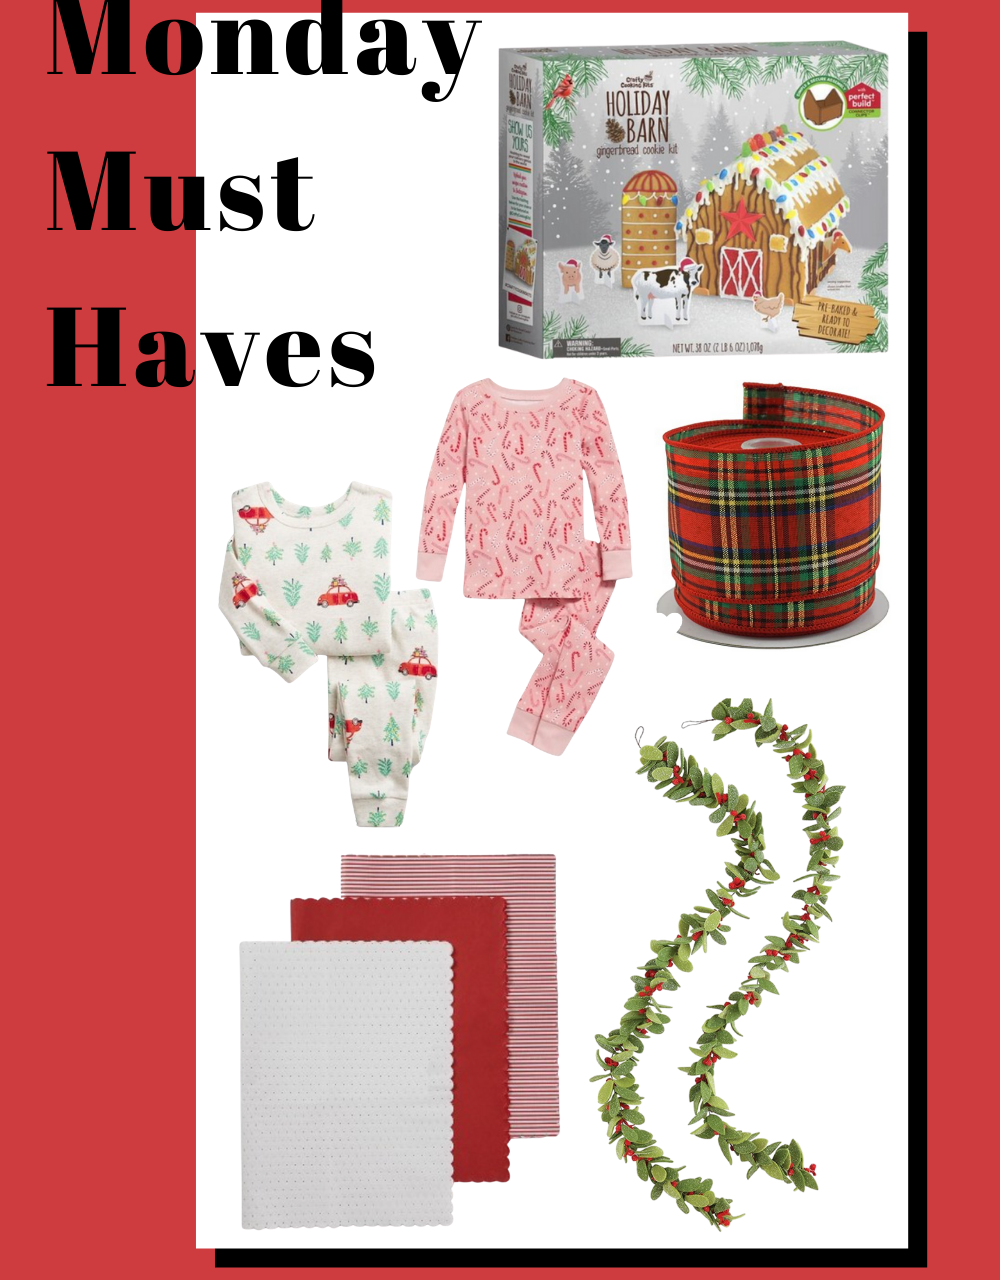 Monday Must Haves: November 2nd, 2020